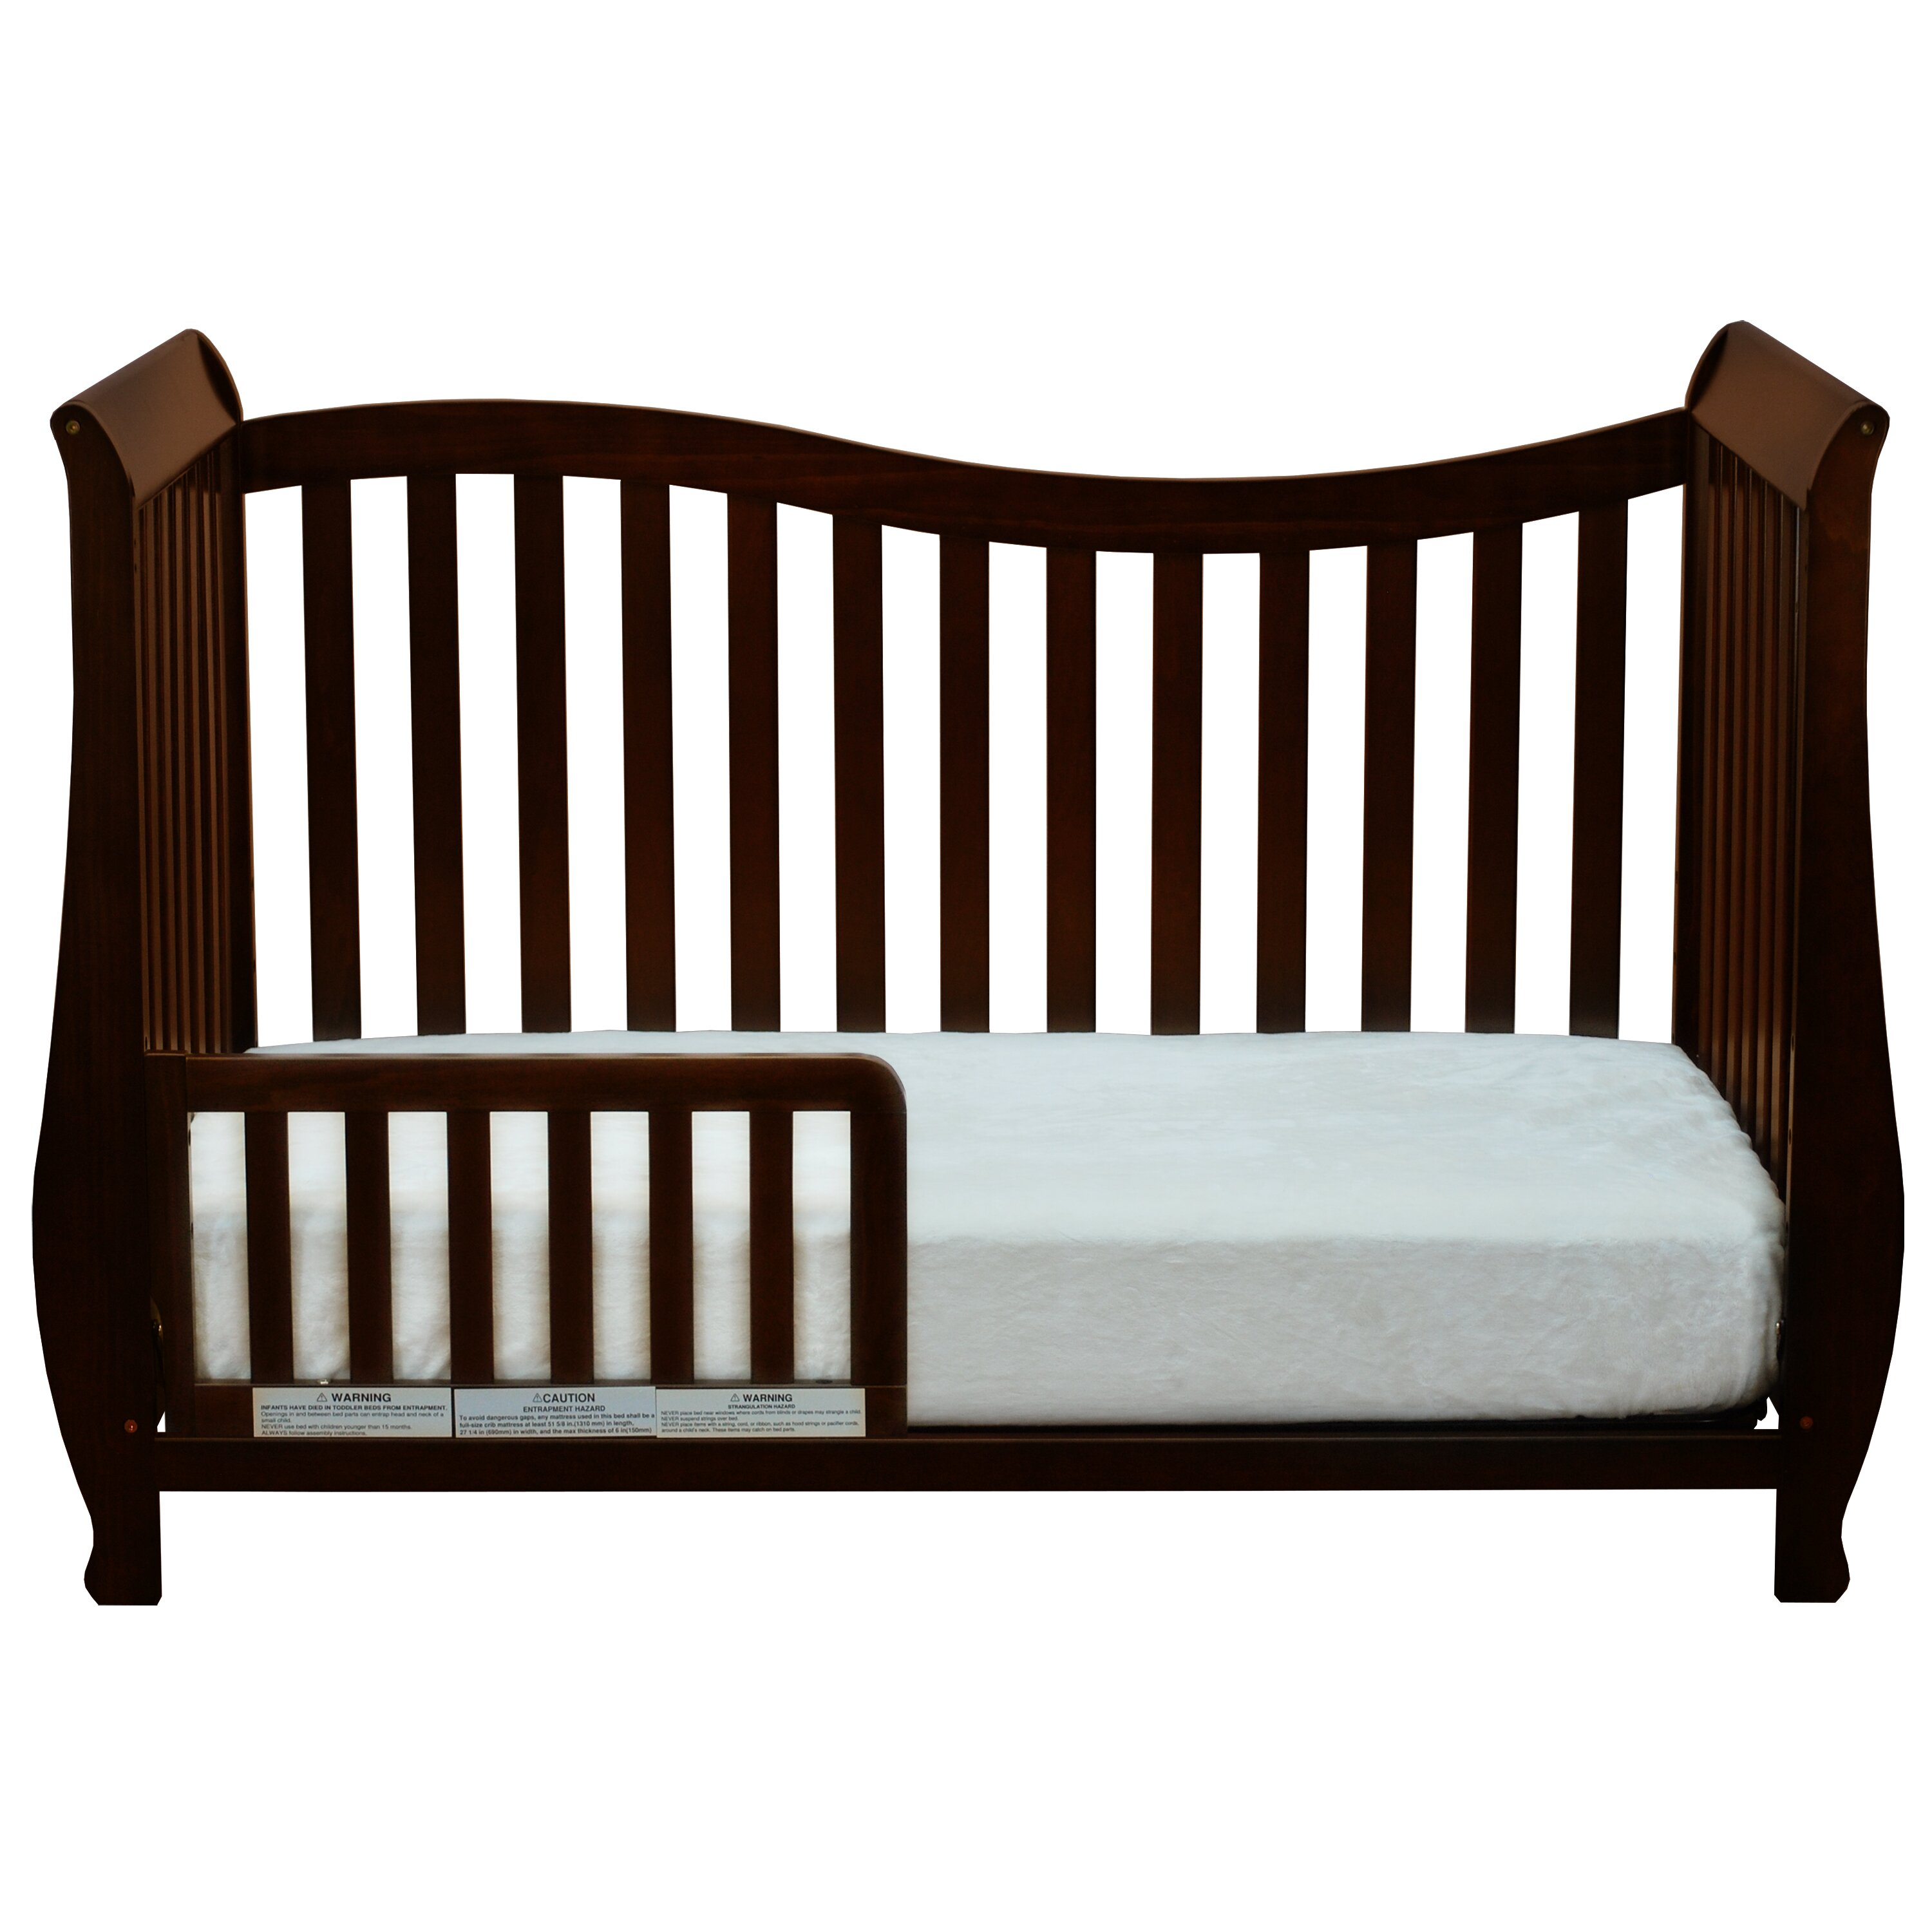 Baby cribs nashville tn - Afg Baby Furniture Lorie 4 In 1 Convertible Crib